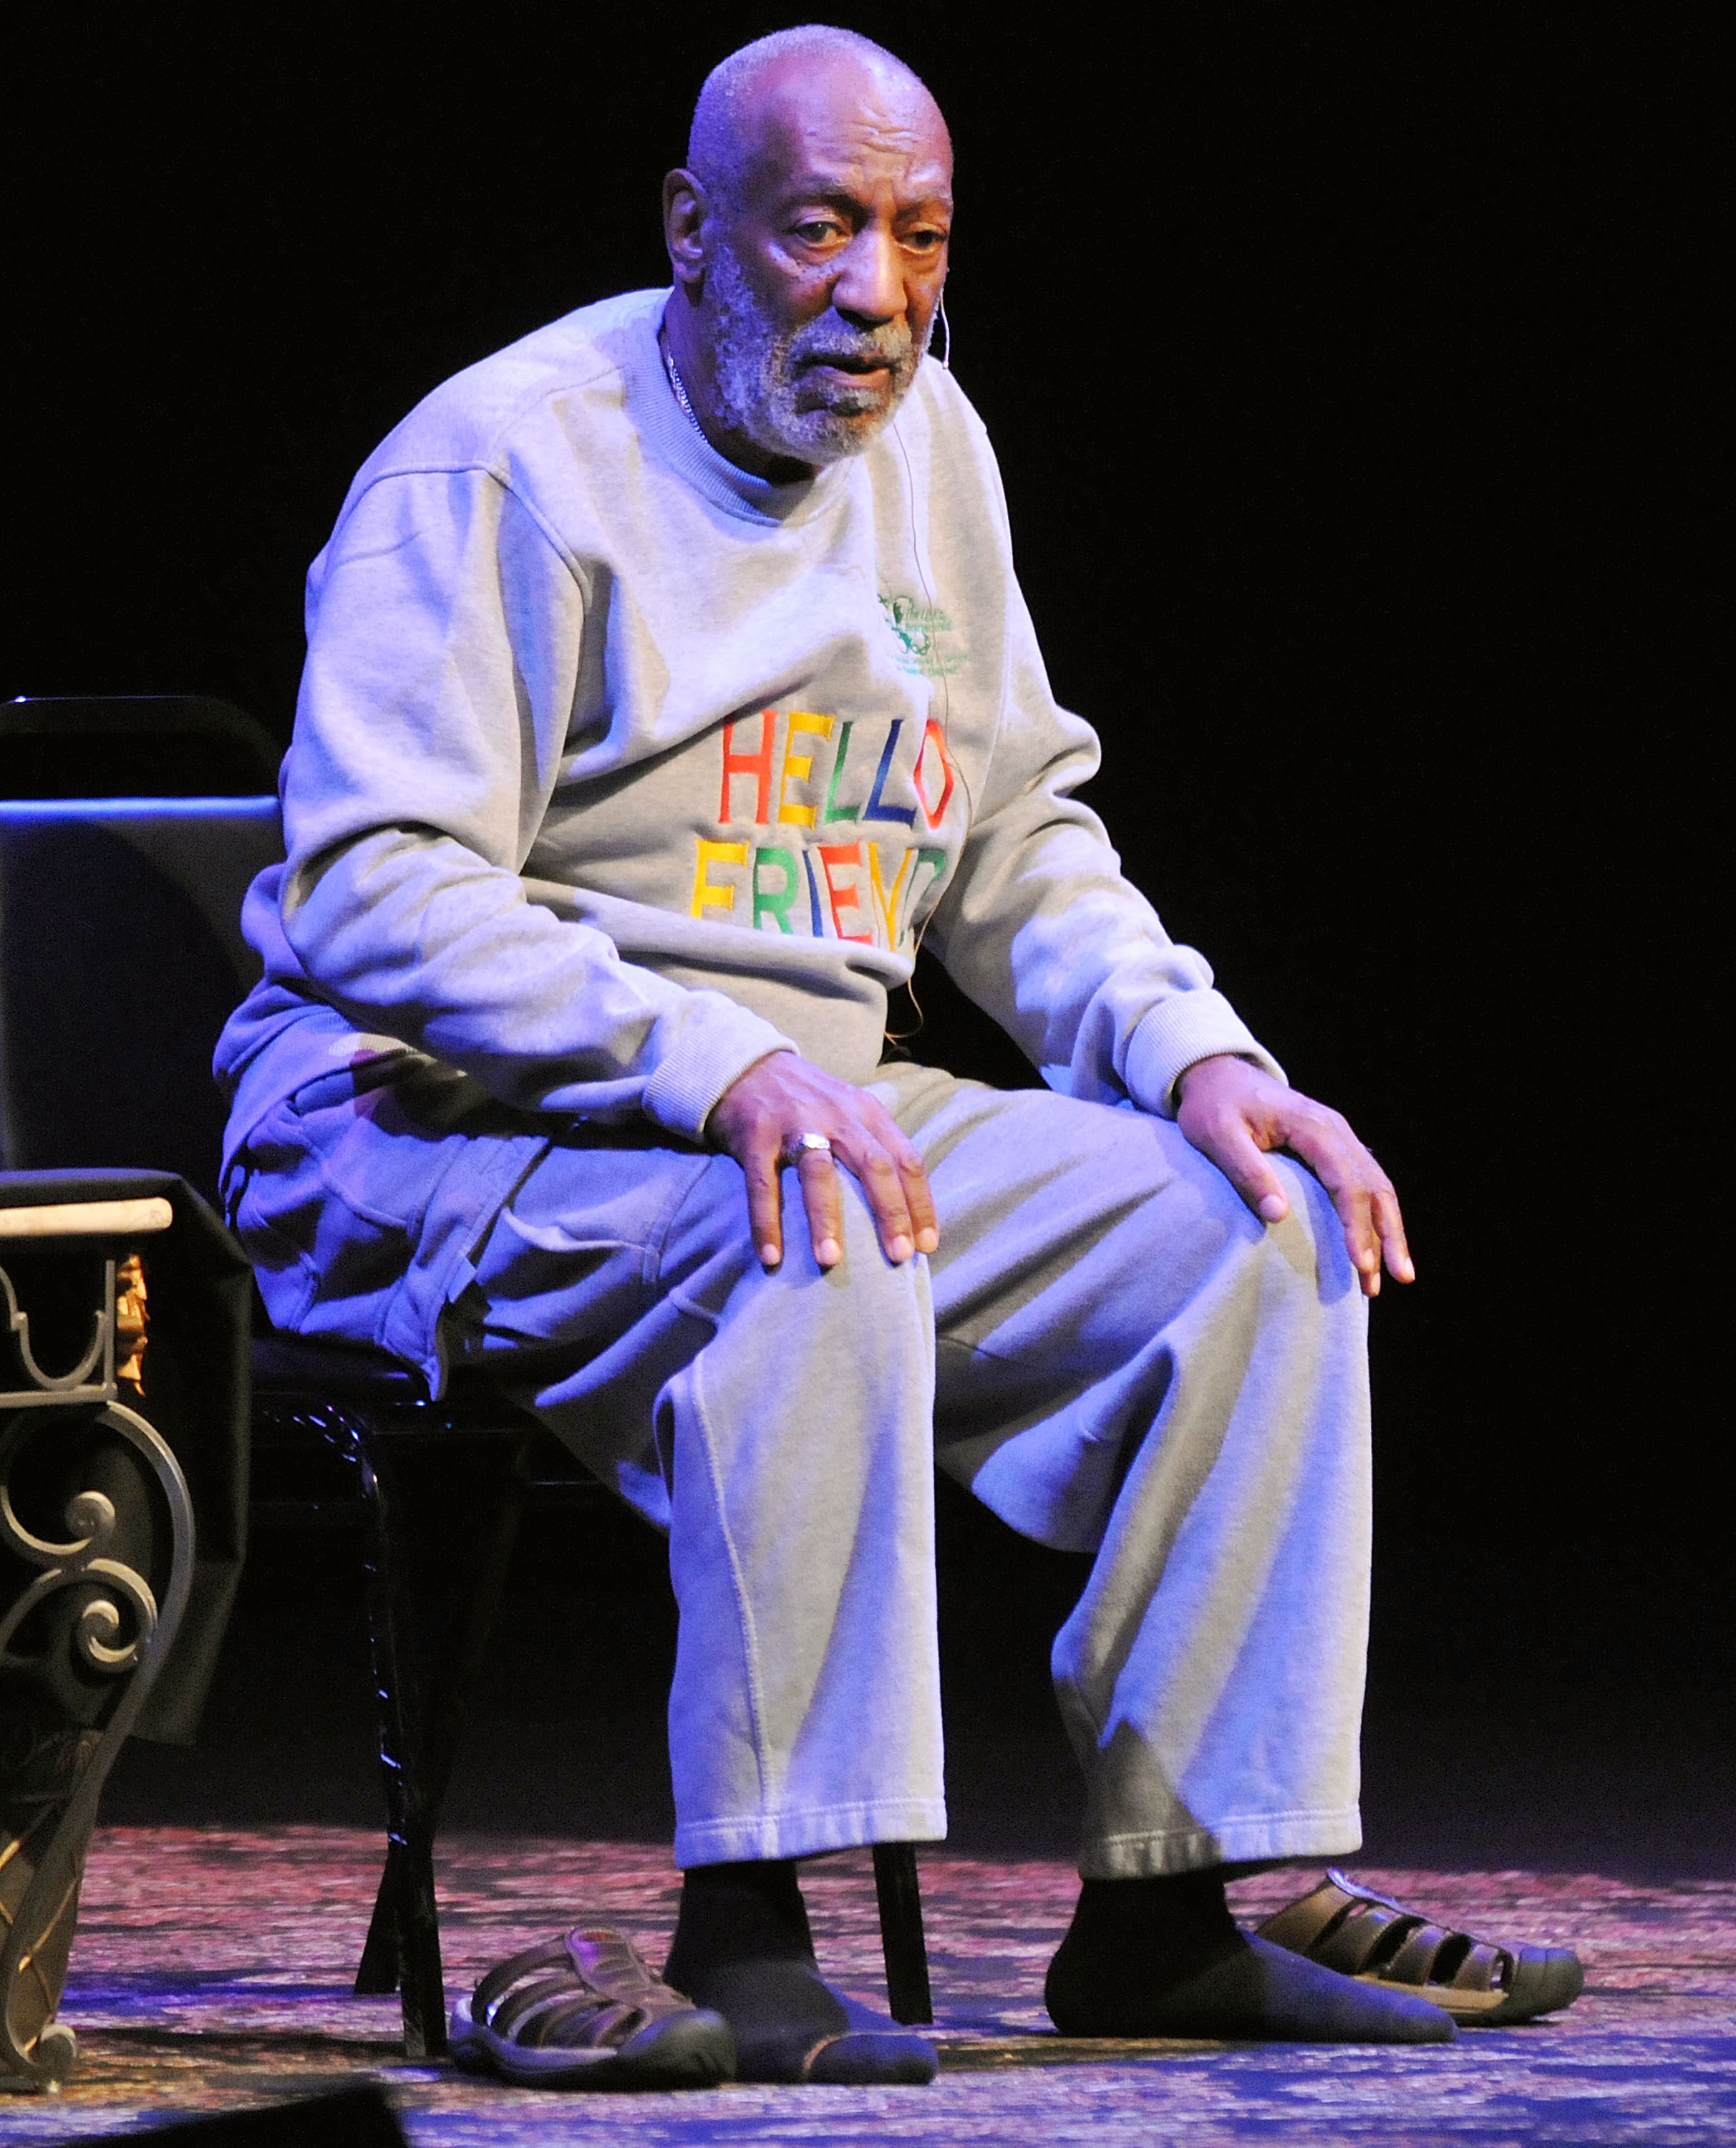 Actor Bill Cosby performs at the King Center for the Performing Arts on Nov. 21, 2014 in Melbourne, Fla.